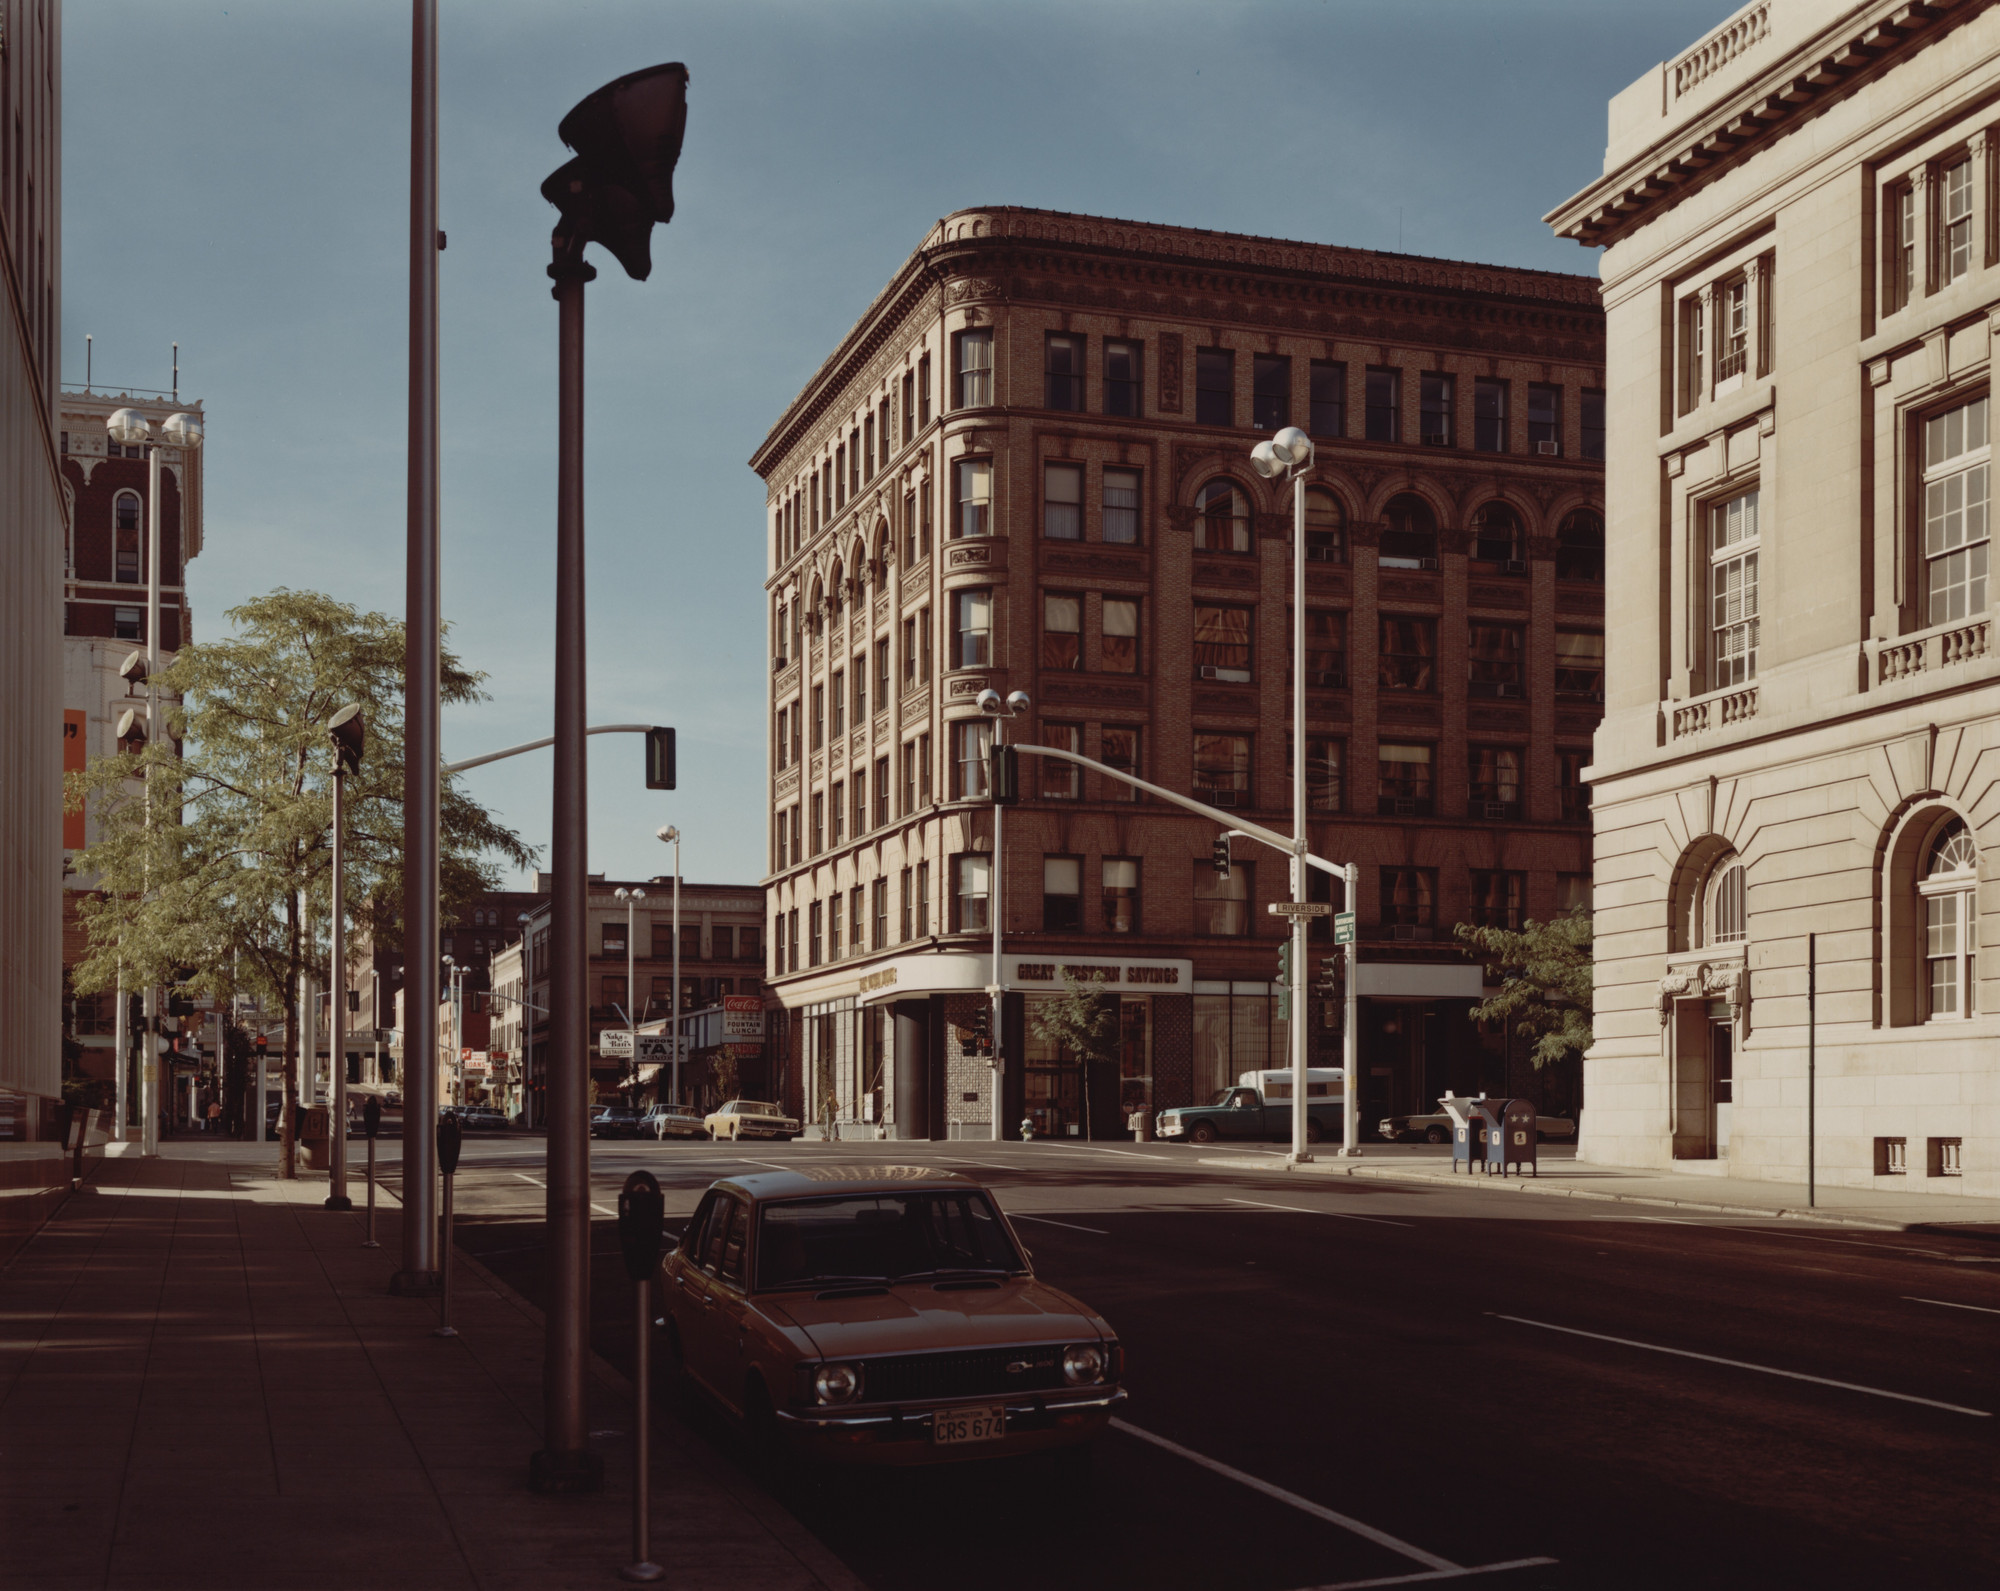 Stephen Shore. Lincoln Street and Riverside Street, Spokane, Washington, August 25, 1974. 1974